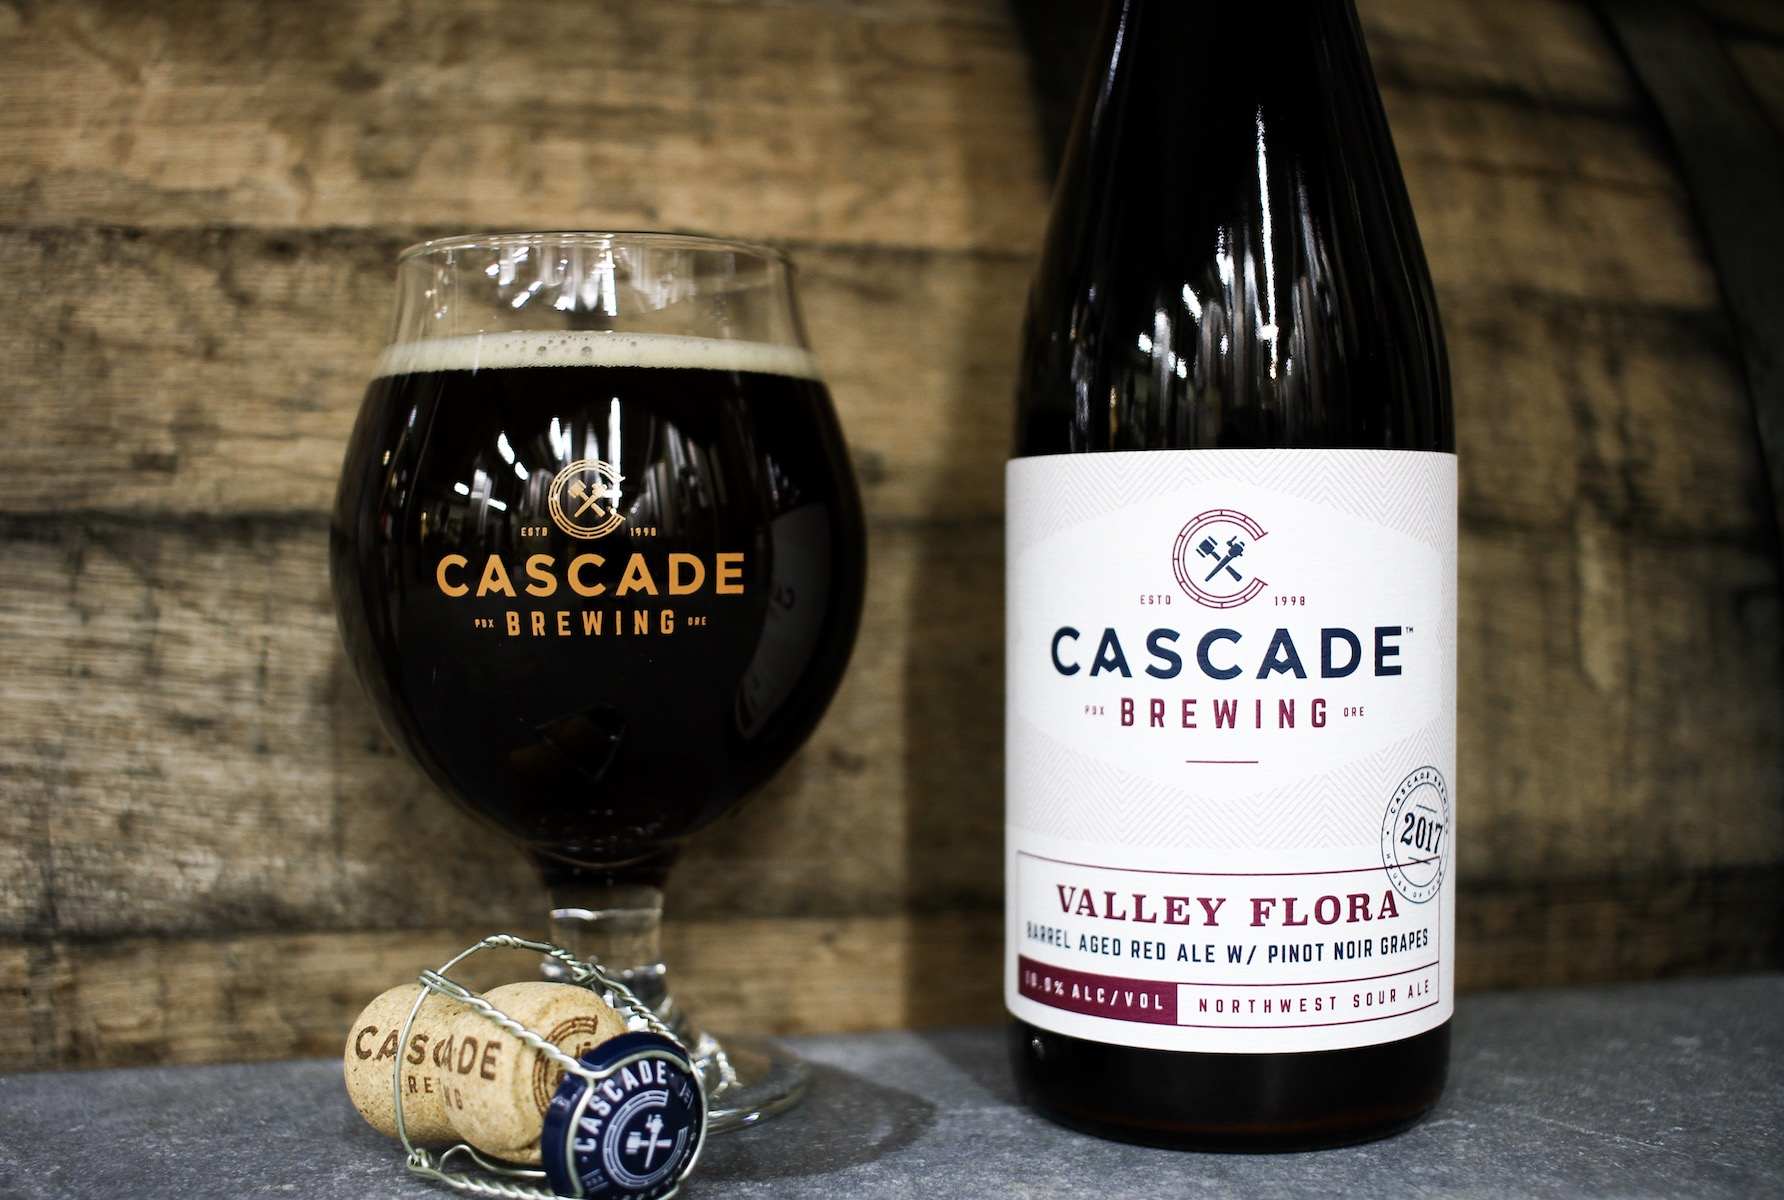 086137a1b73f Cascade Brewing Announces Release of Valley Flora in 500ml Bottles and Draft